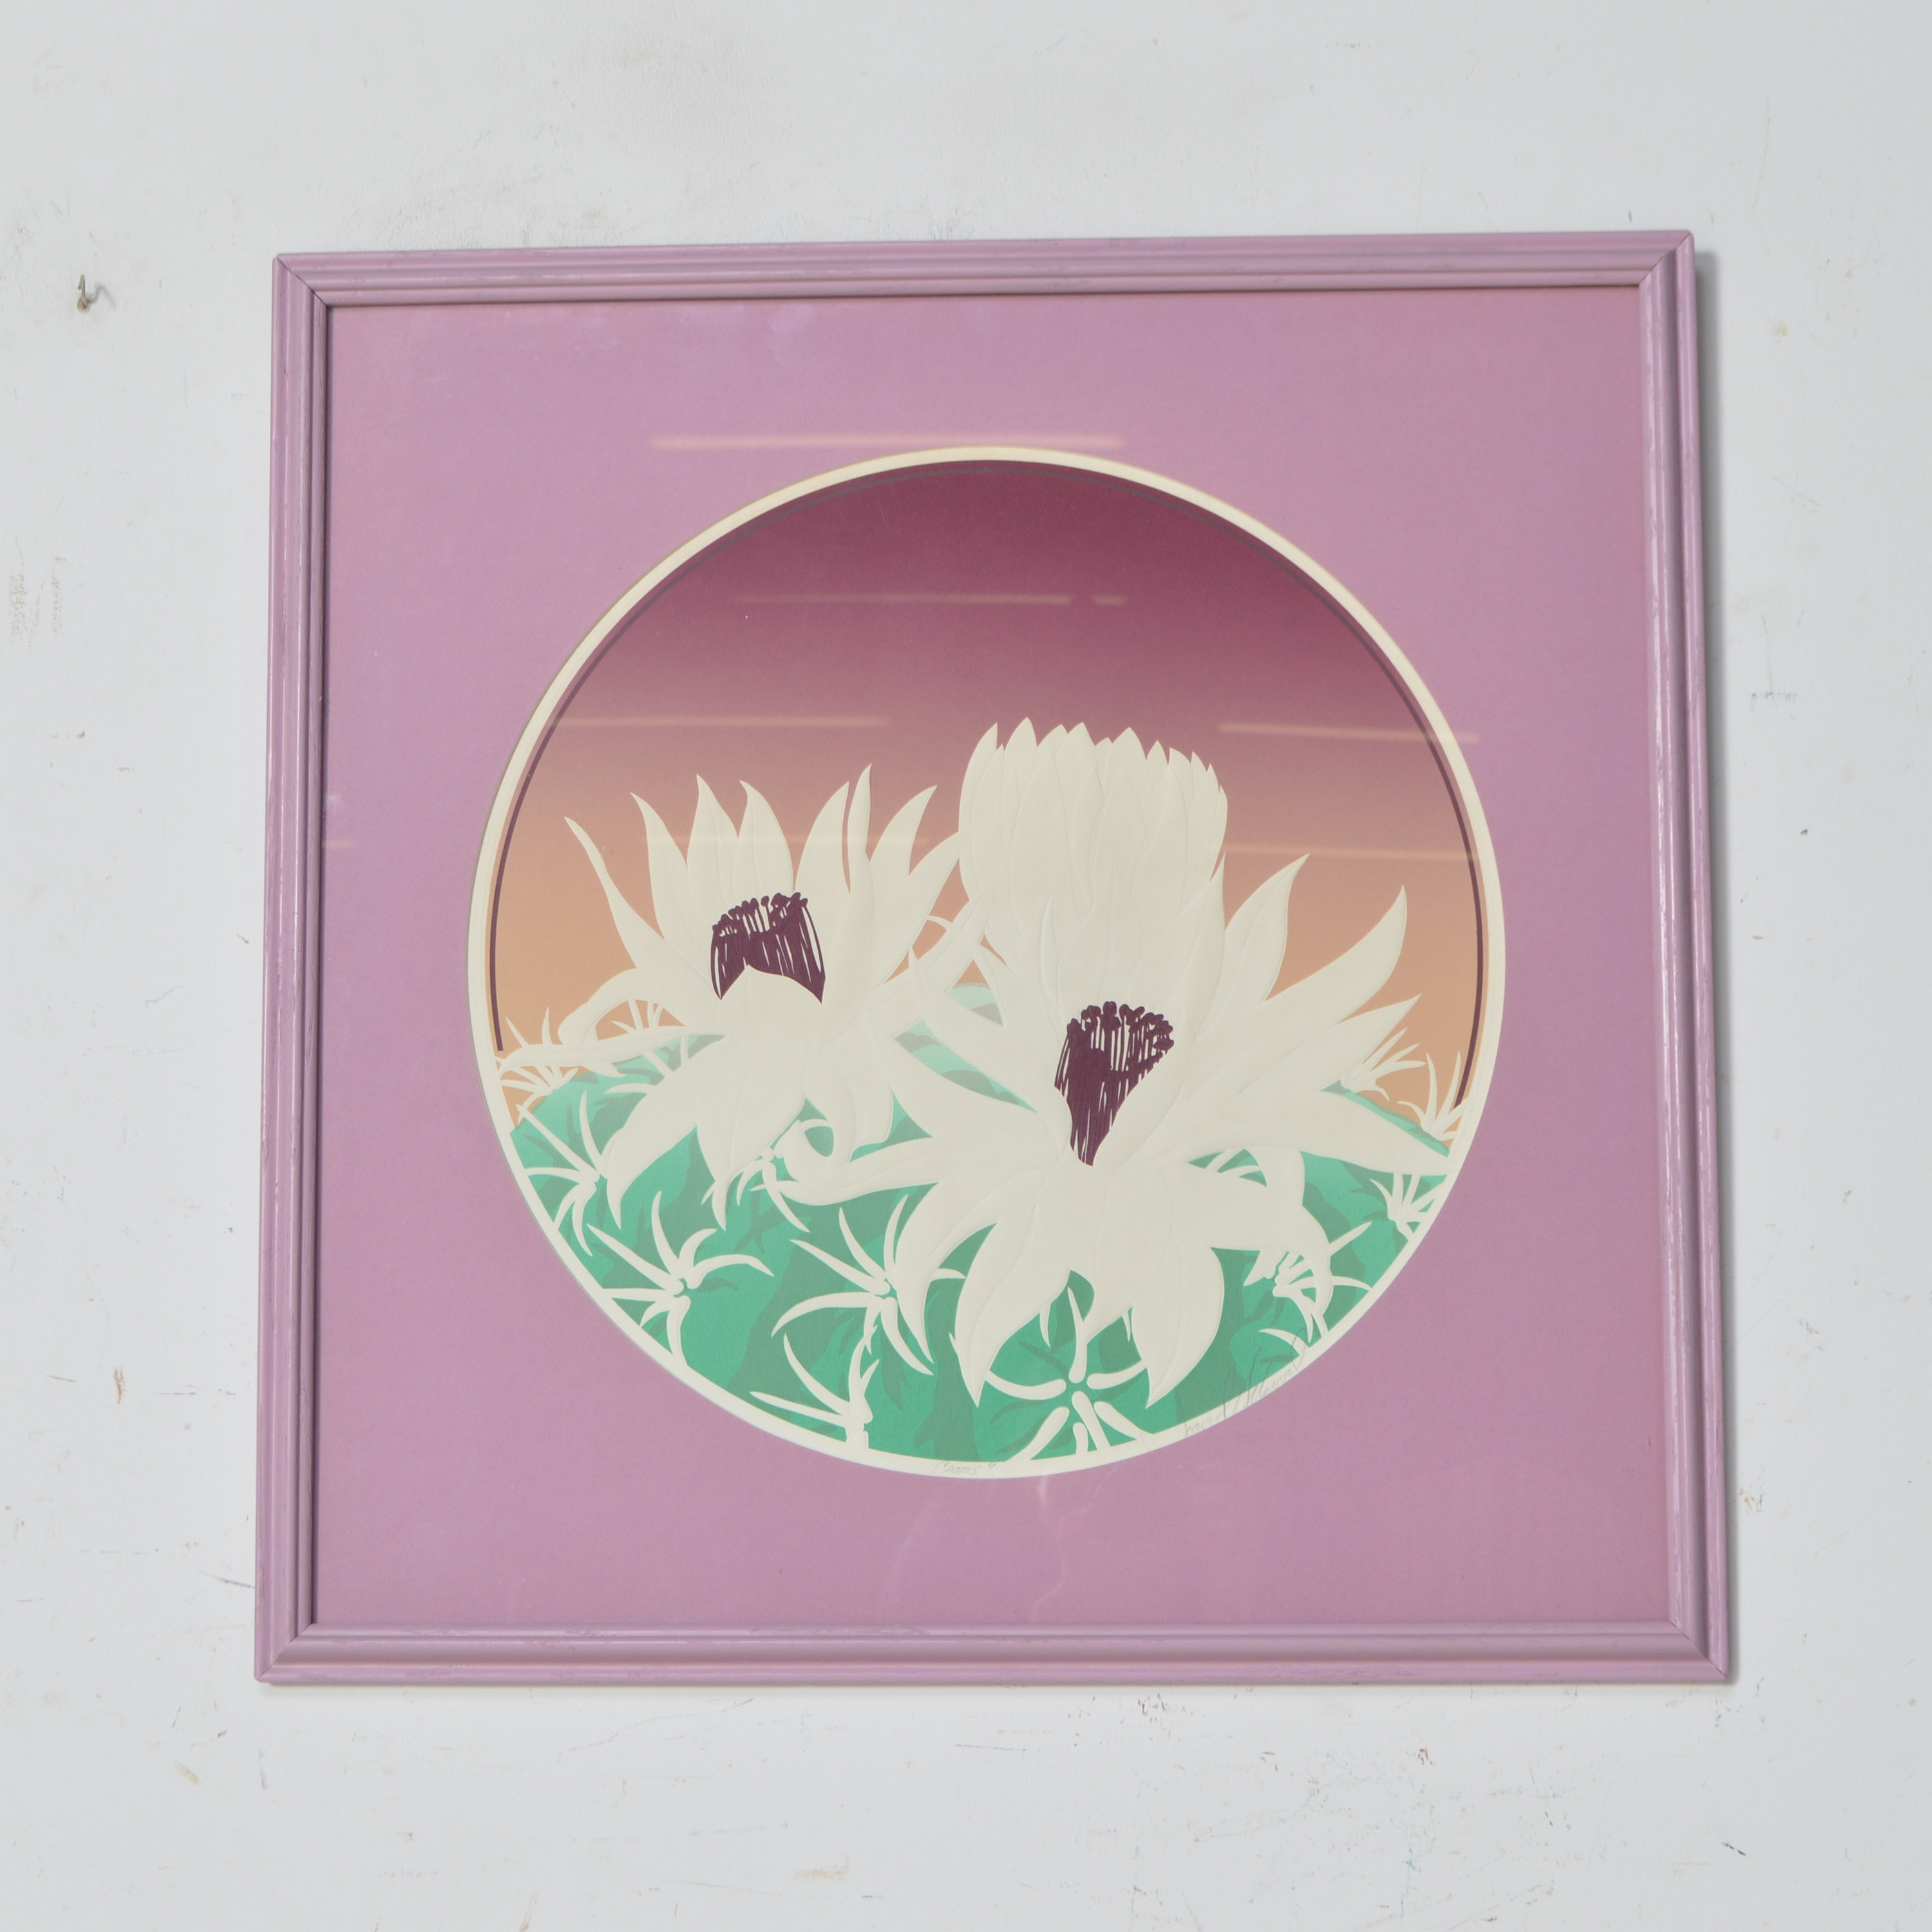 Signed Embossed Serigraph of Water Lilies